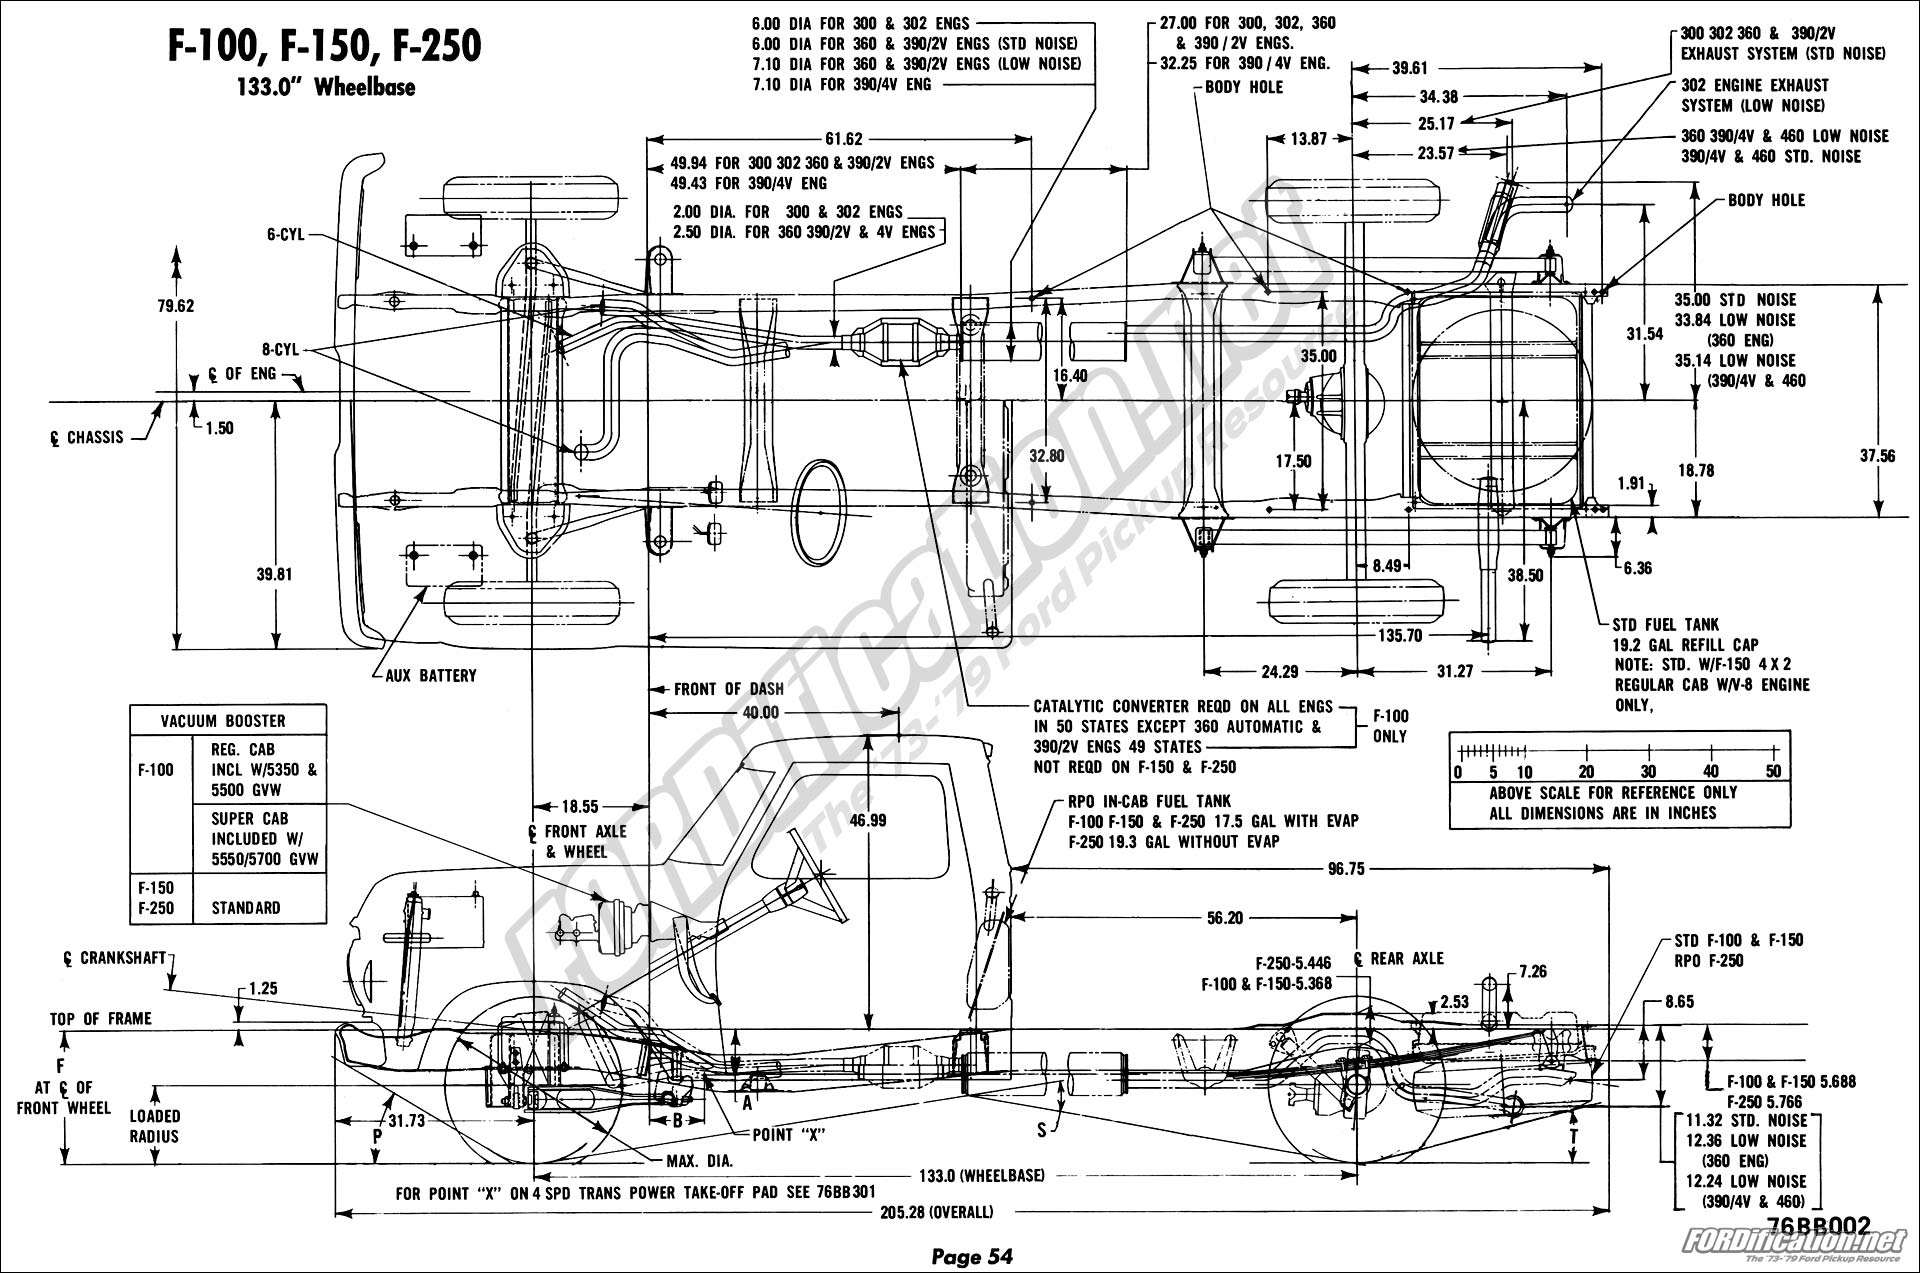 2000 ford f 150 chassis diagram best secret wiring diagram • 1985 ford 302 engine diagram get image about wiring ford ranger frame unibody chassis